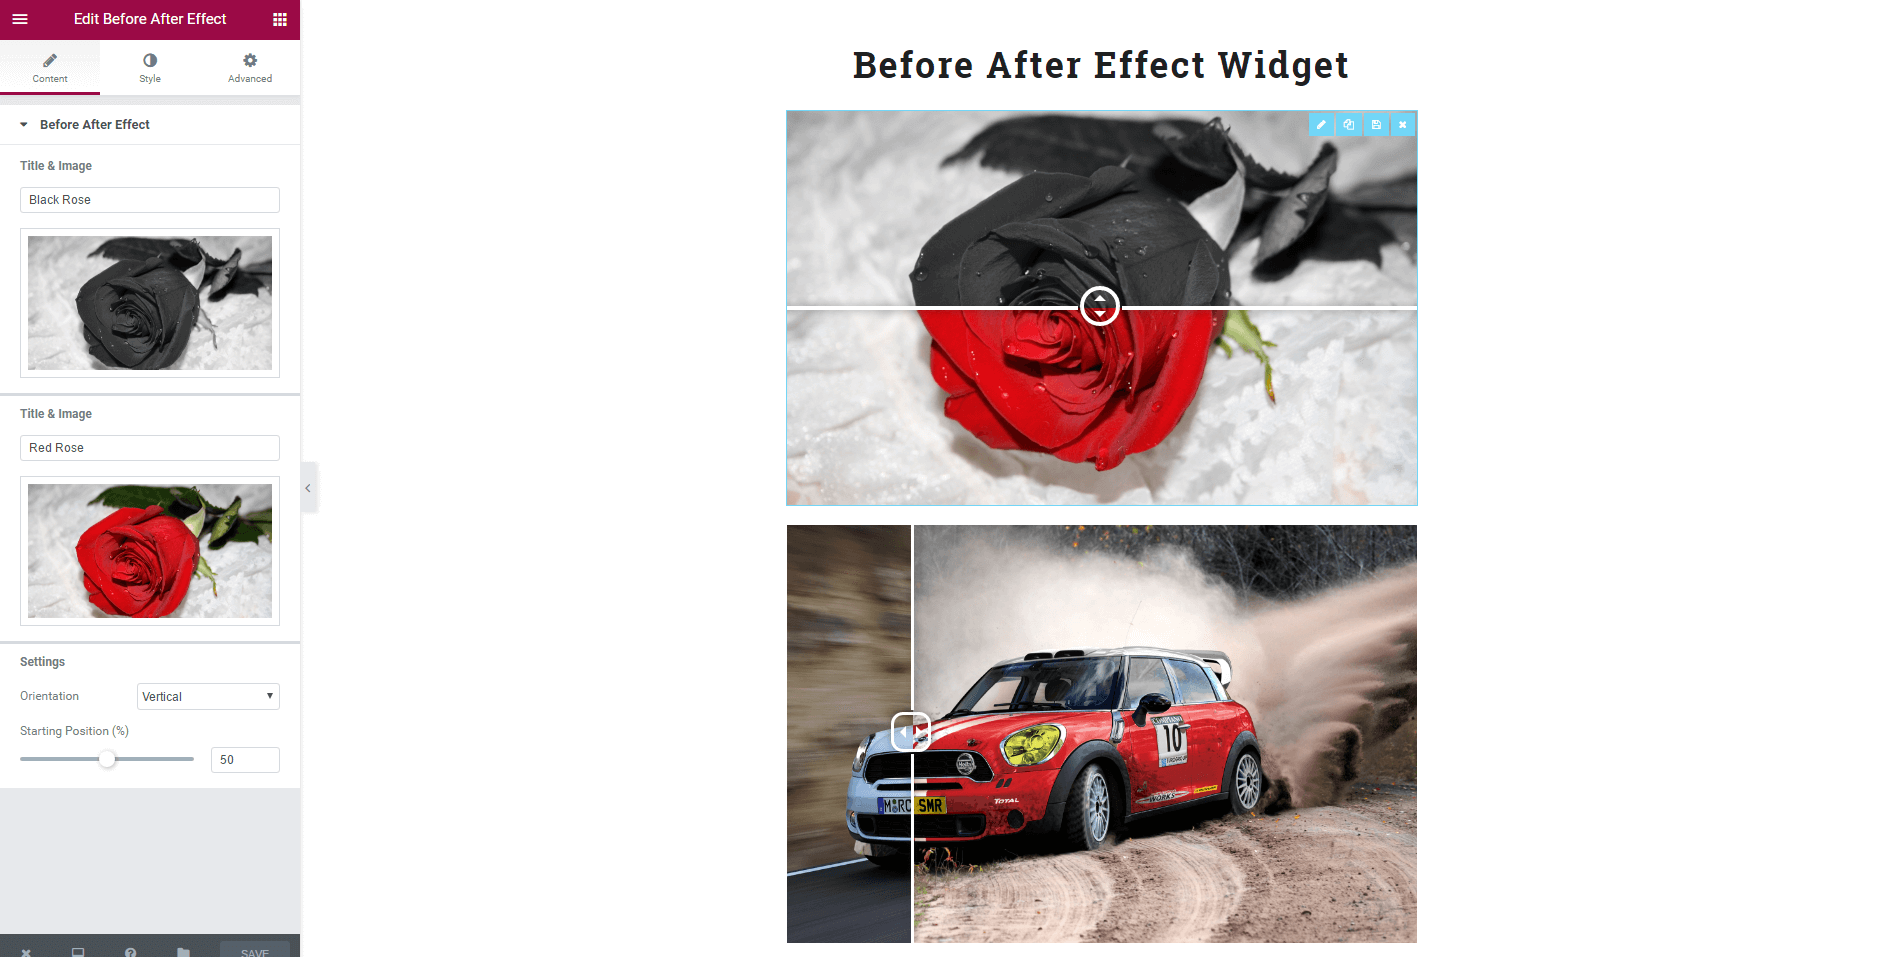 Display visual differences between two images.